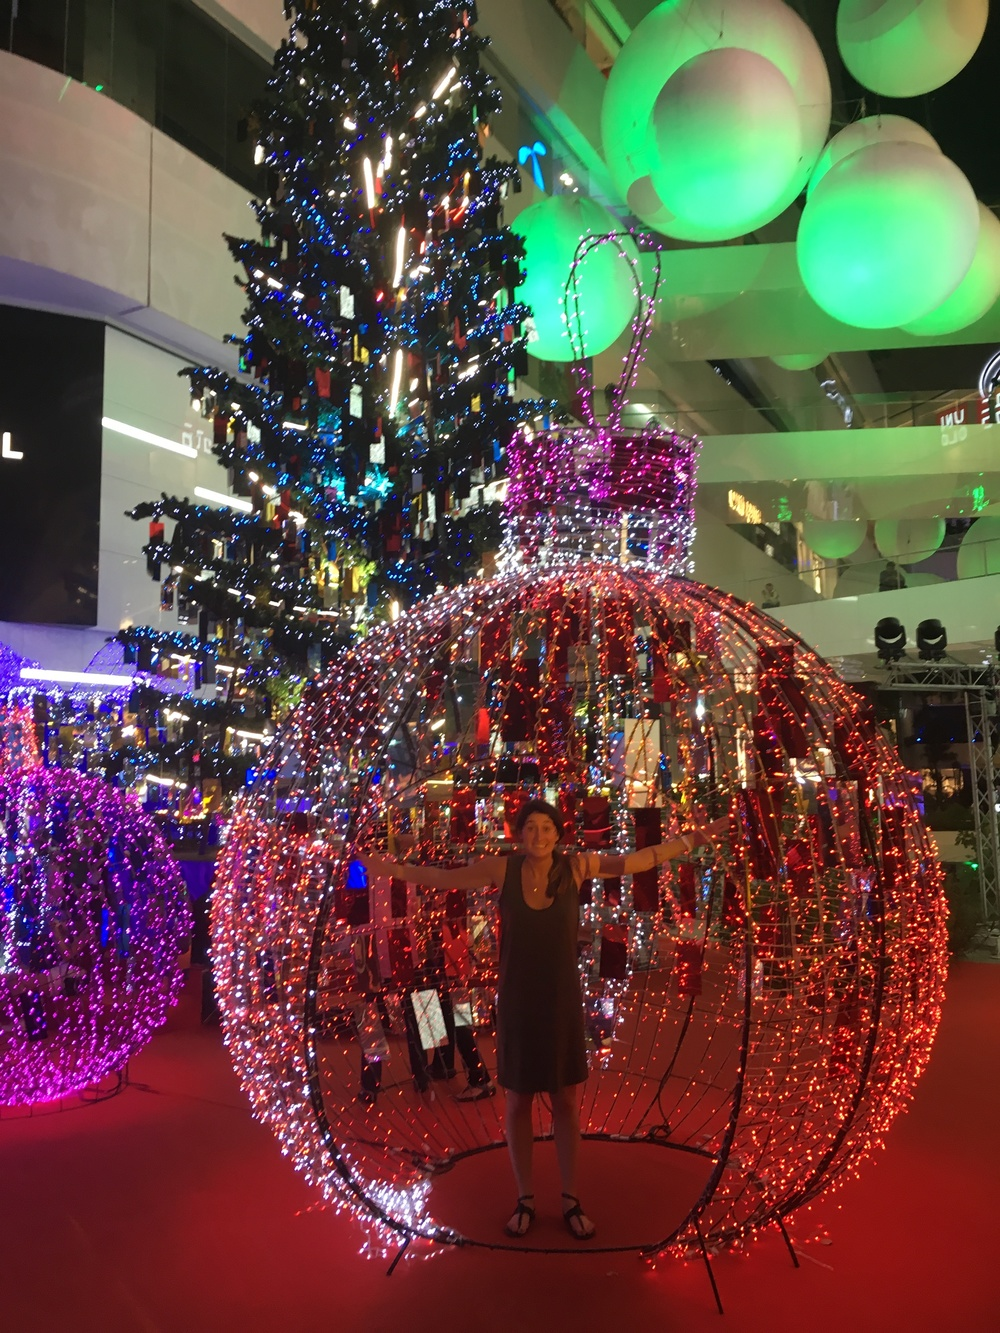 Inside the christmas light ball